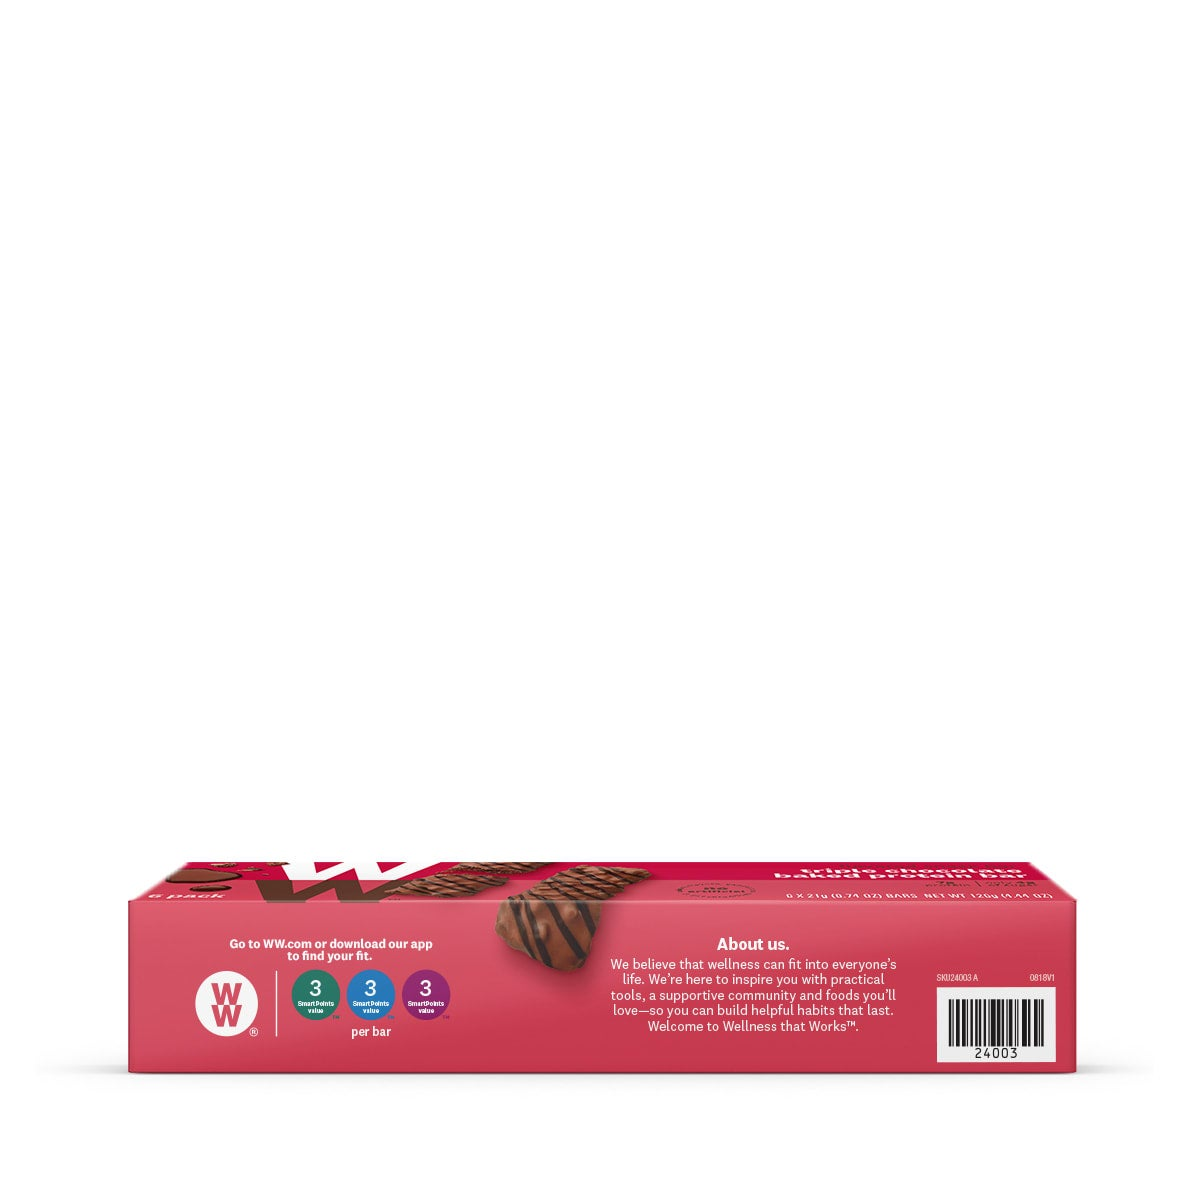 Triple Chocolate Baked Protein Bar - side of box